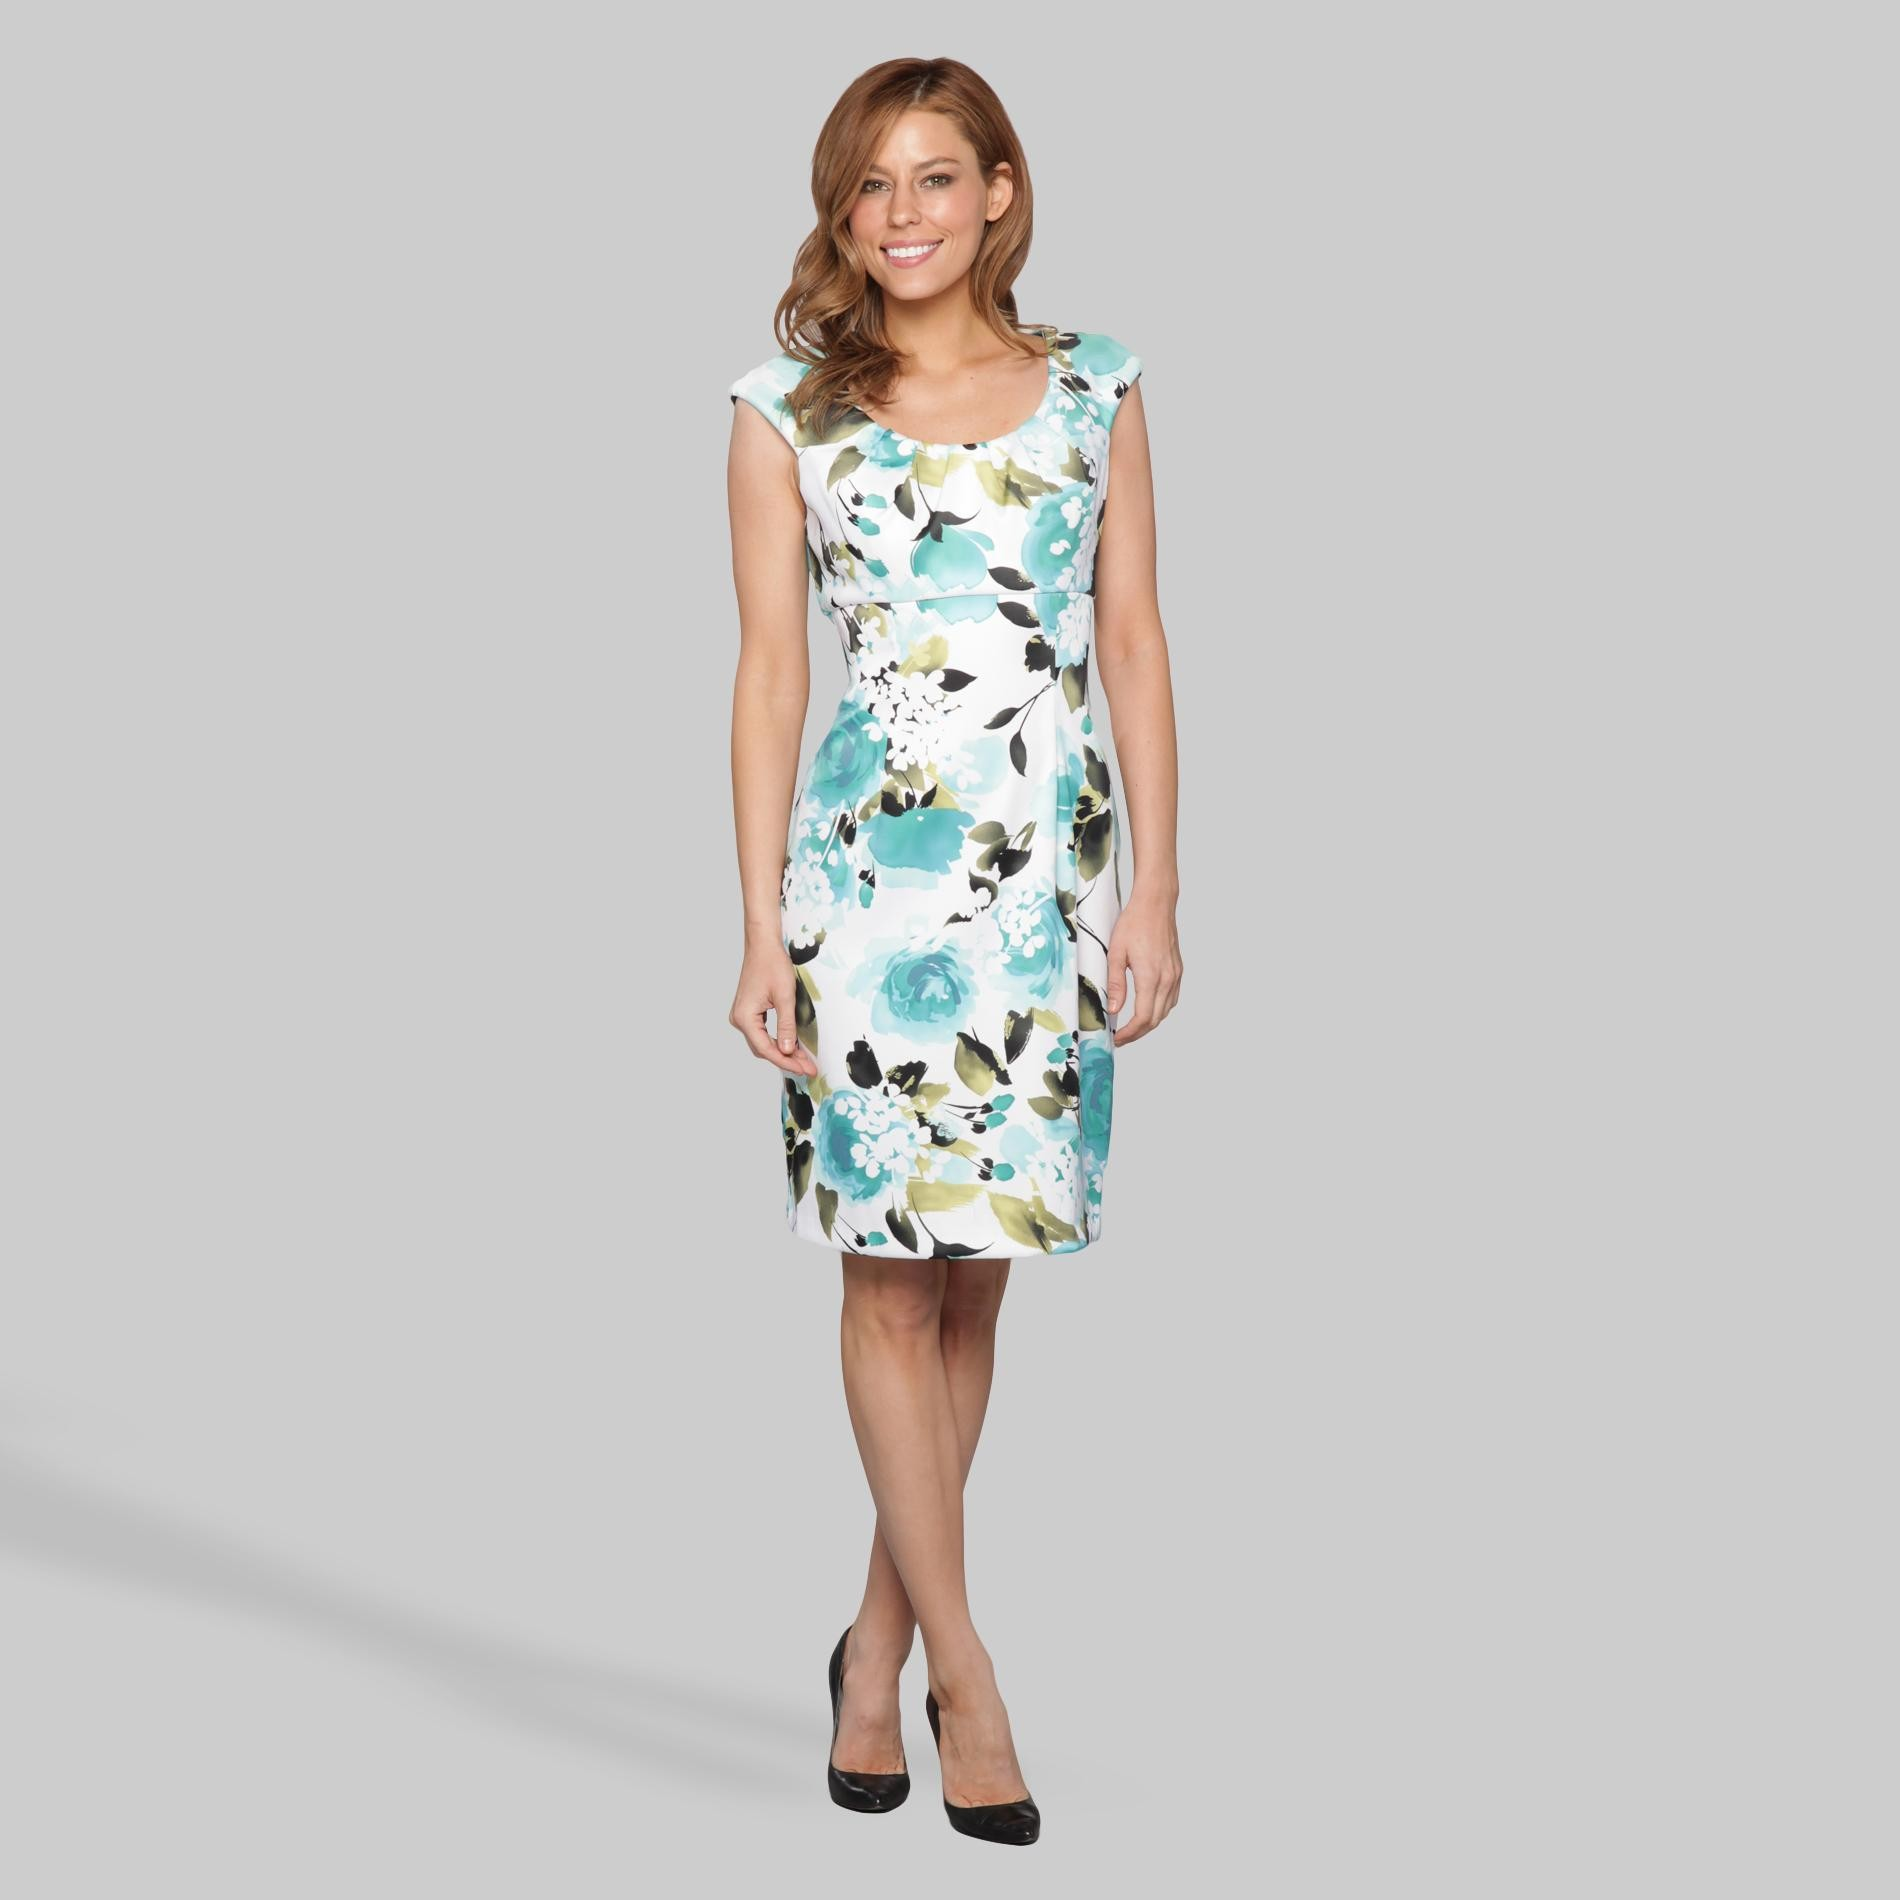 Women's Scoop Neck Dress - Floral at Sears.com